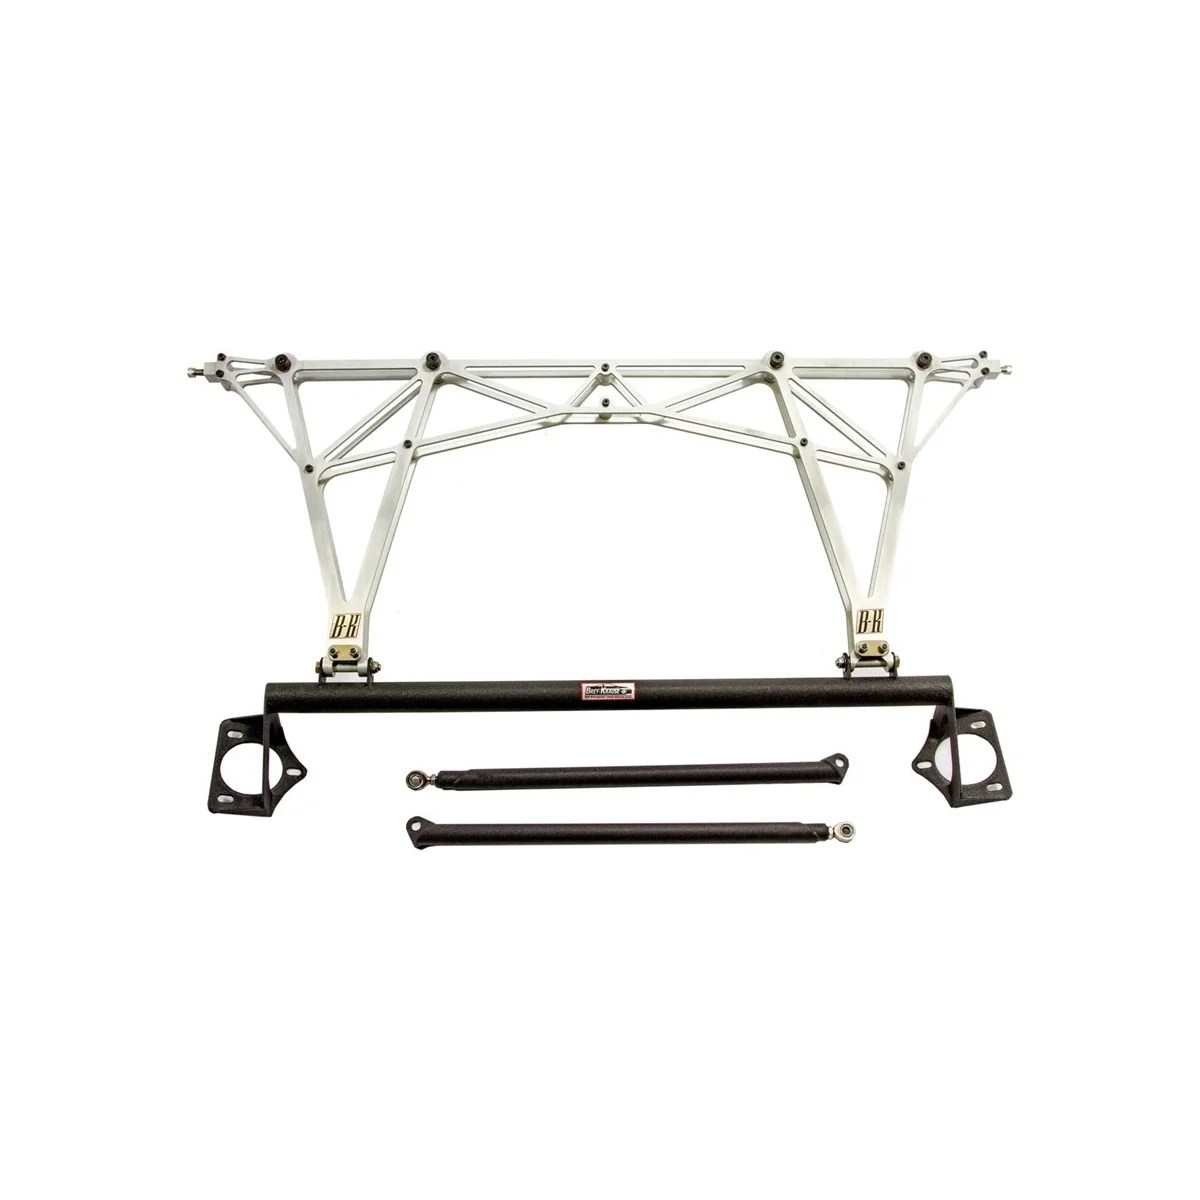 E28 Harness Bar